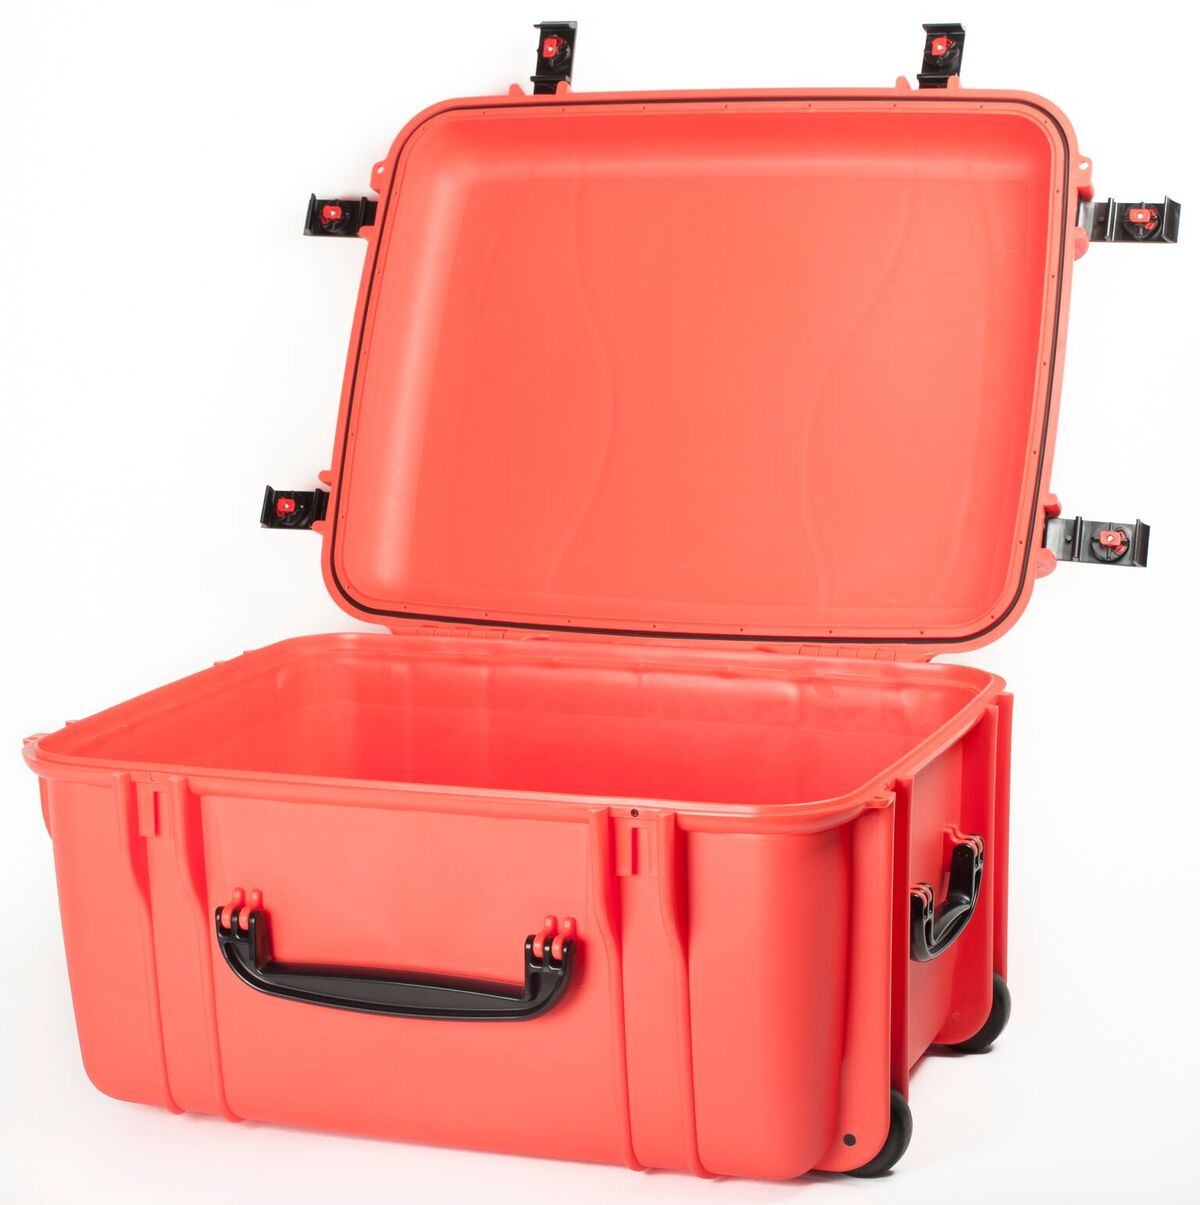 SEAHORSE PROTECTIVE EQUIPMENT CASES      SE1220,OR